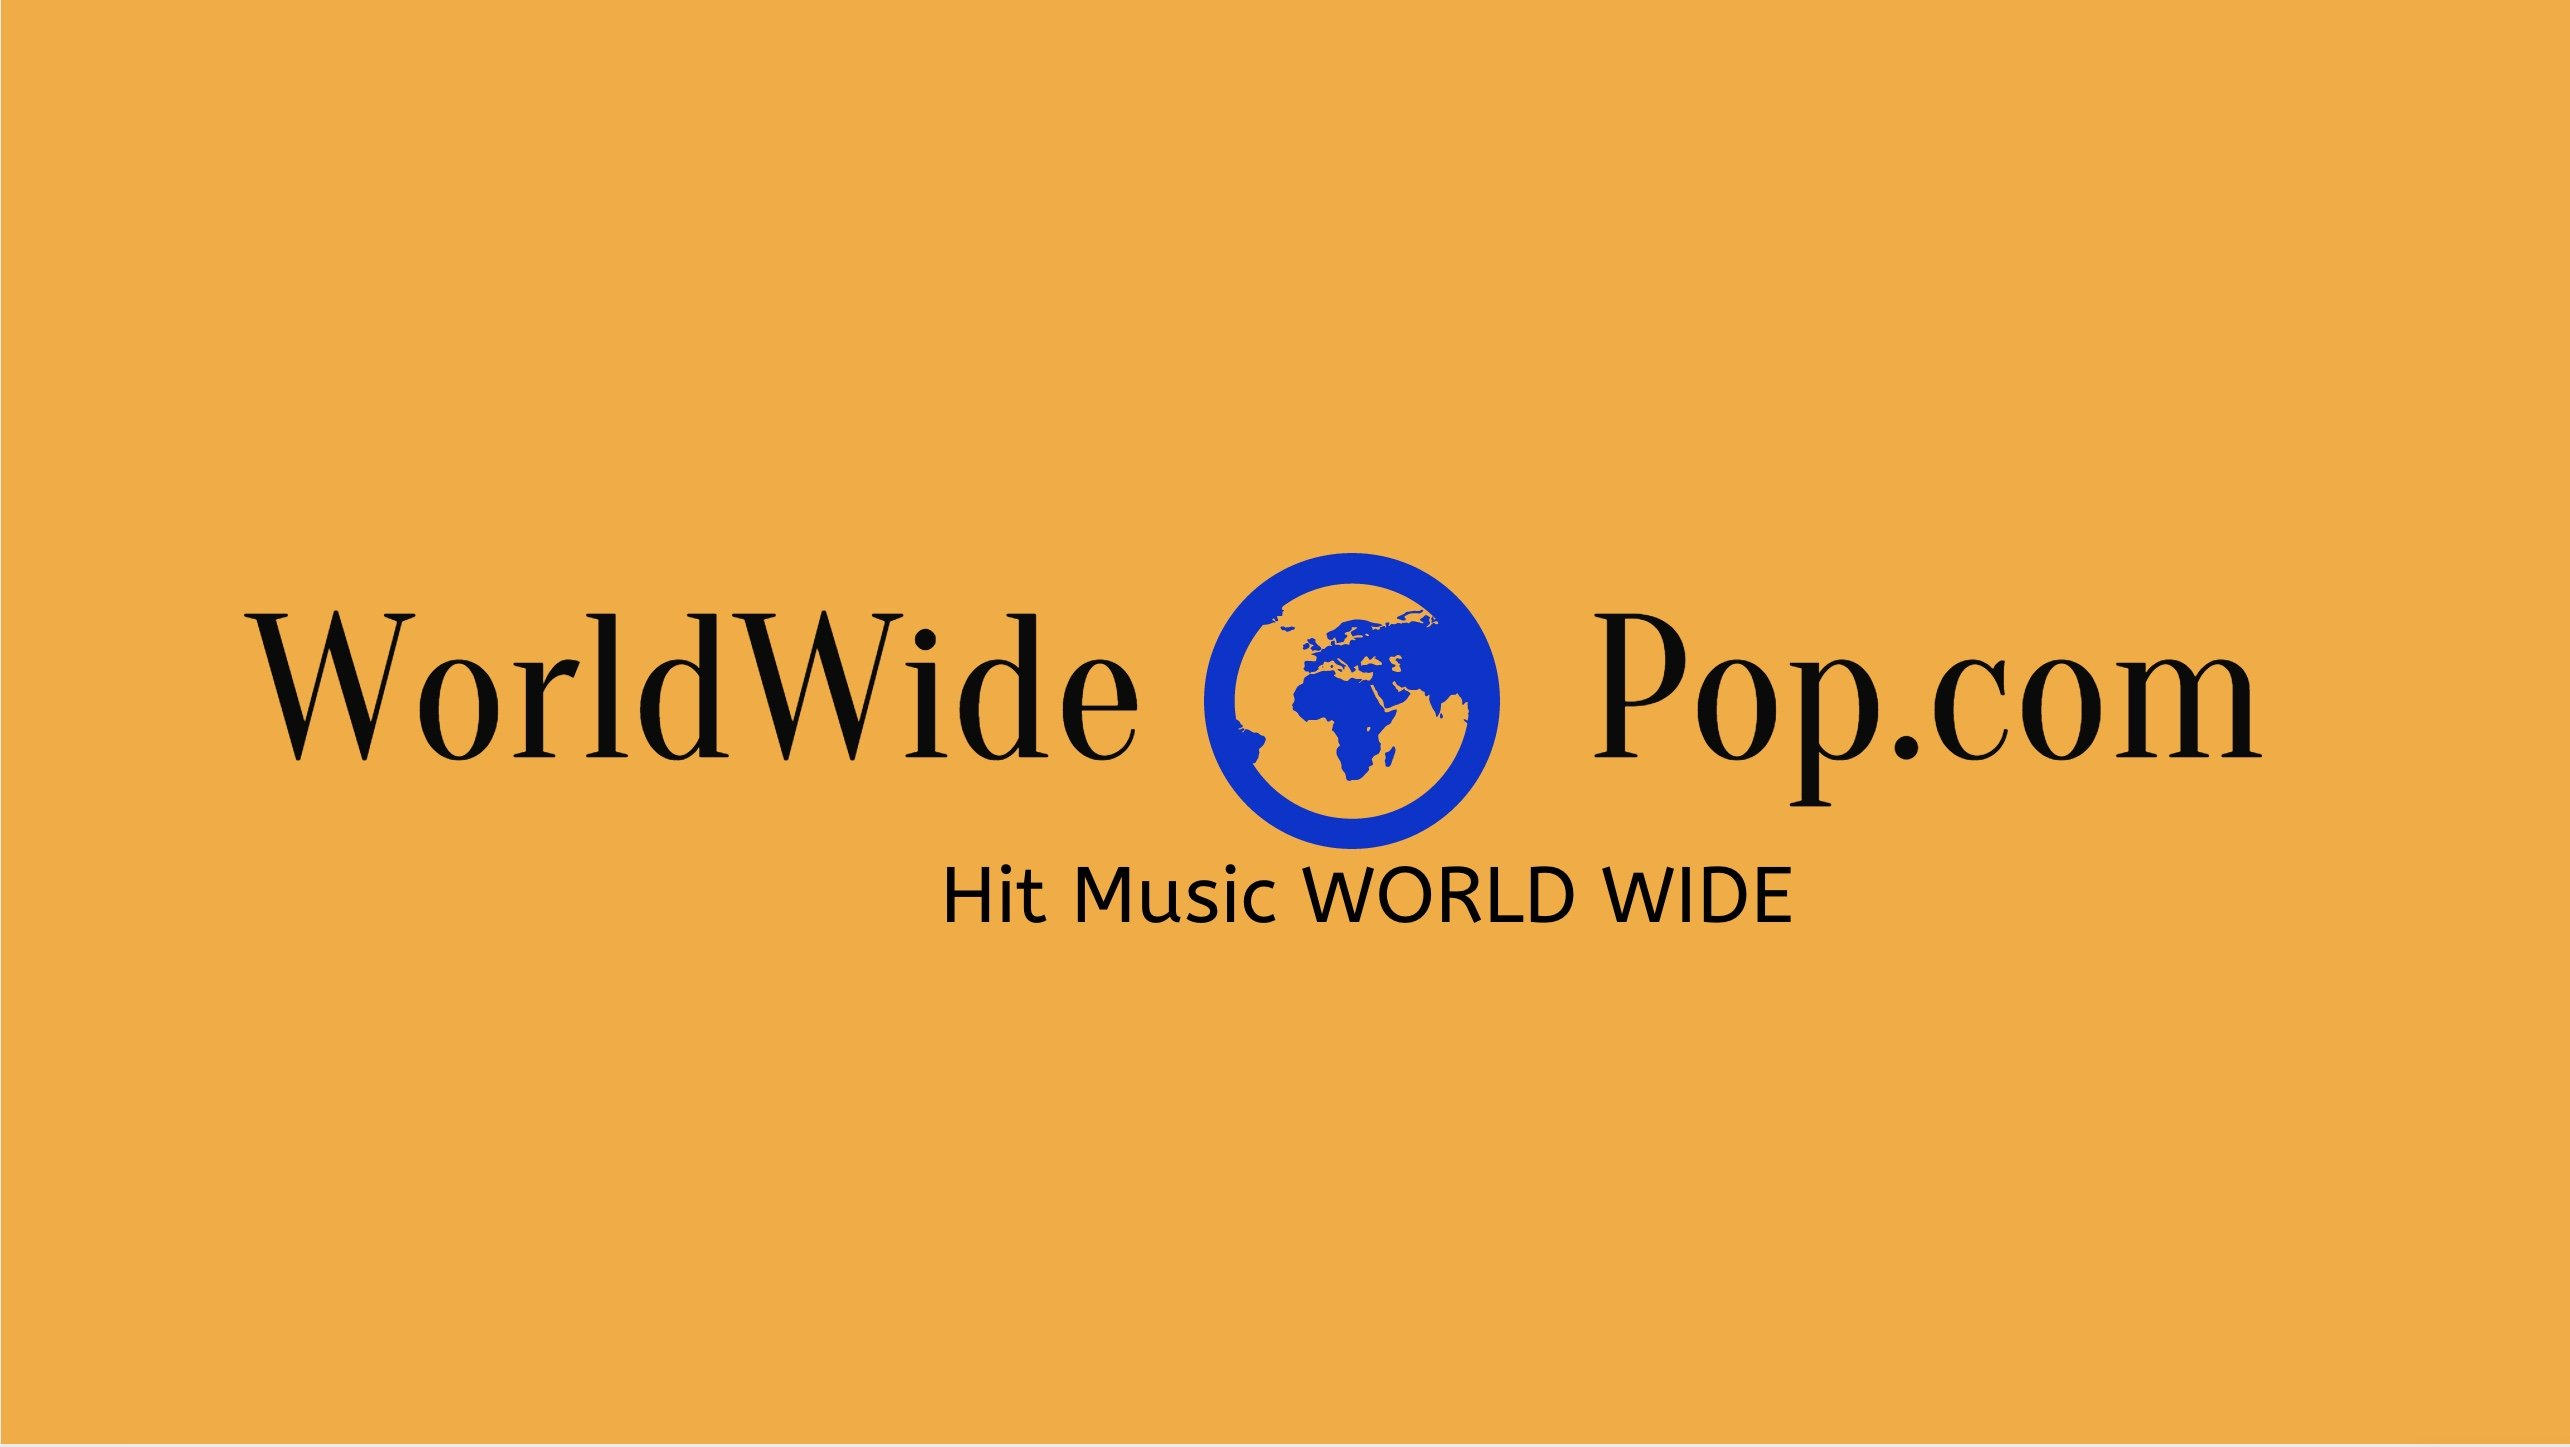 WorldWidePop